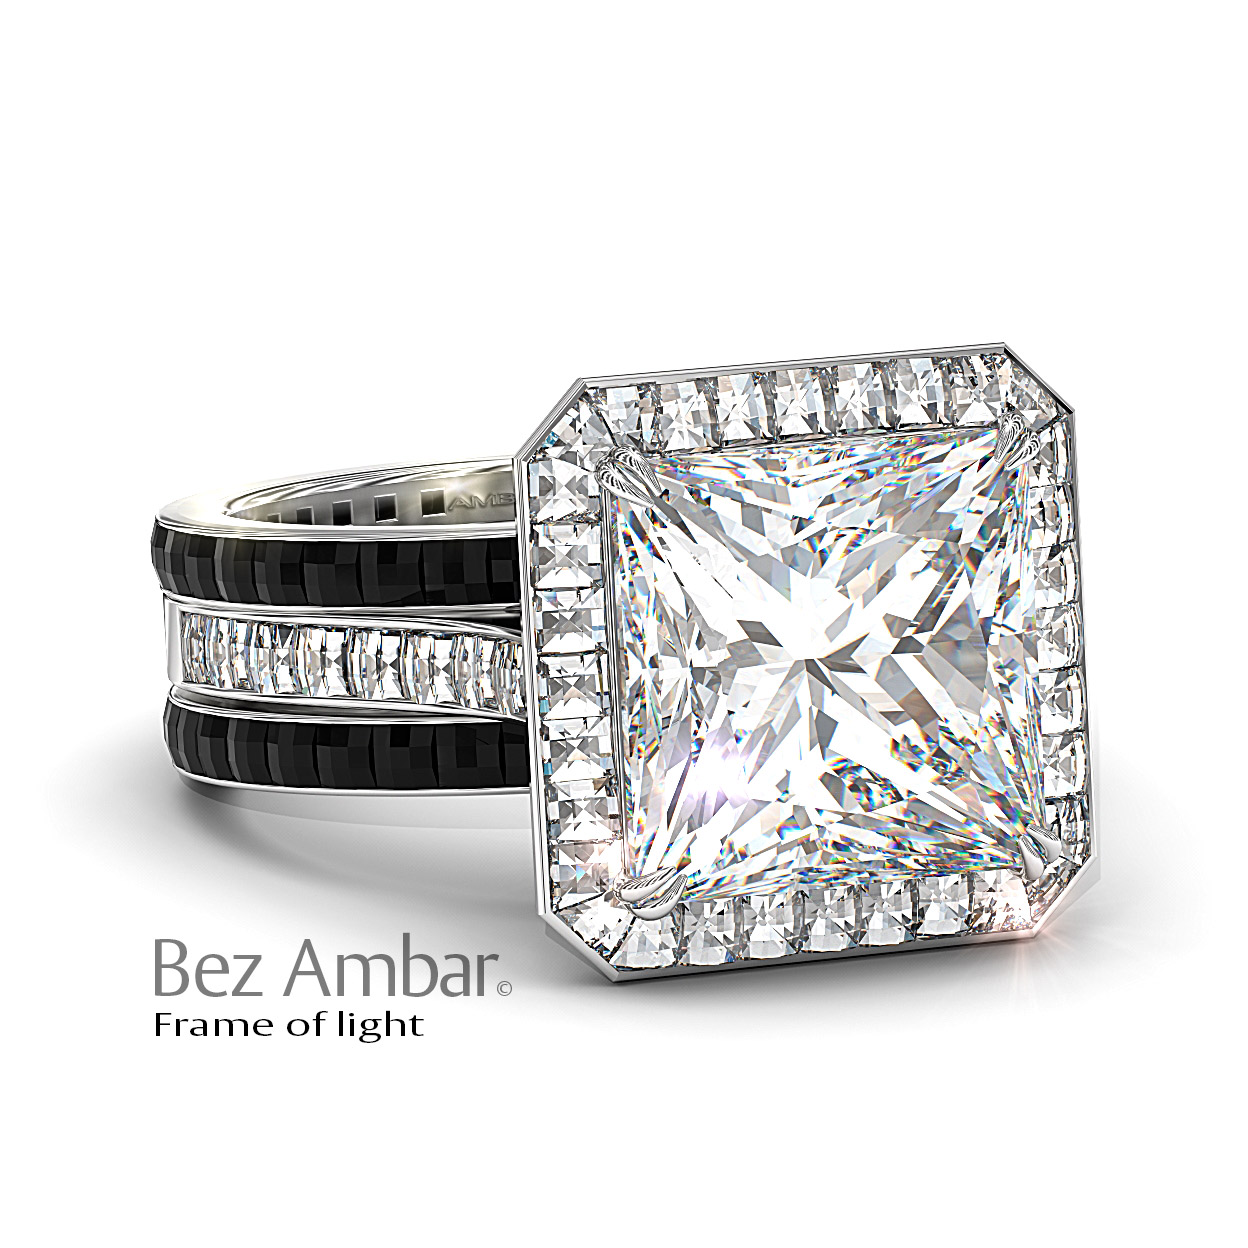 frame of light 10 carat diamond ring